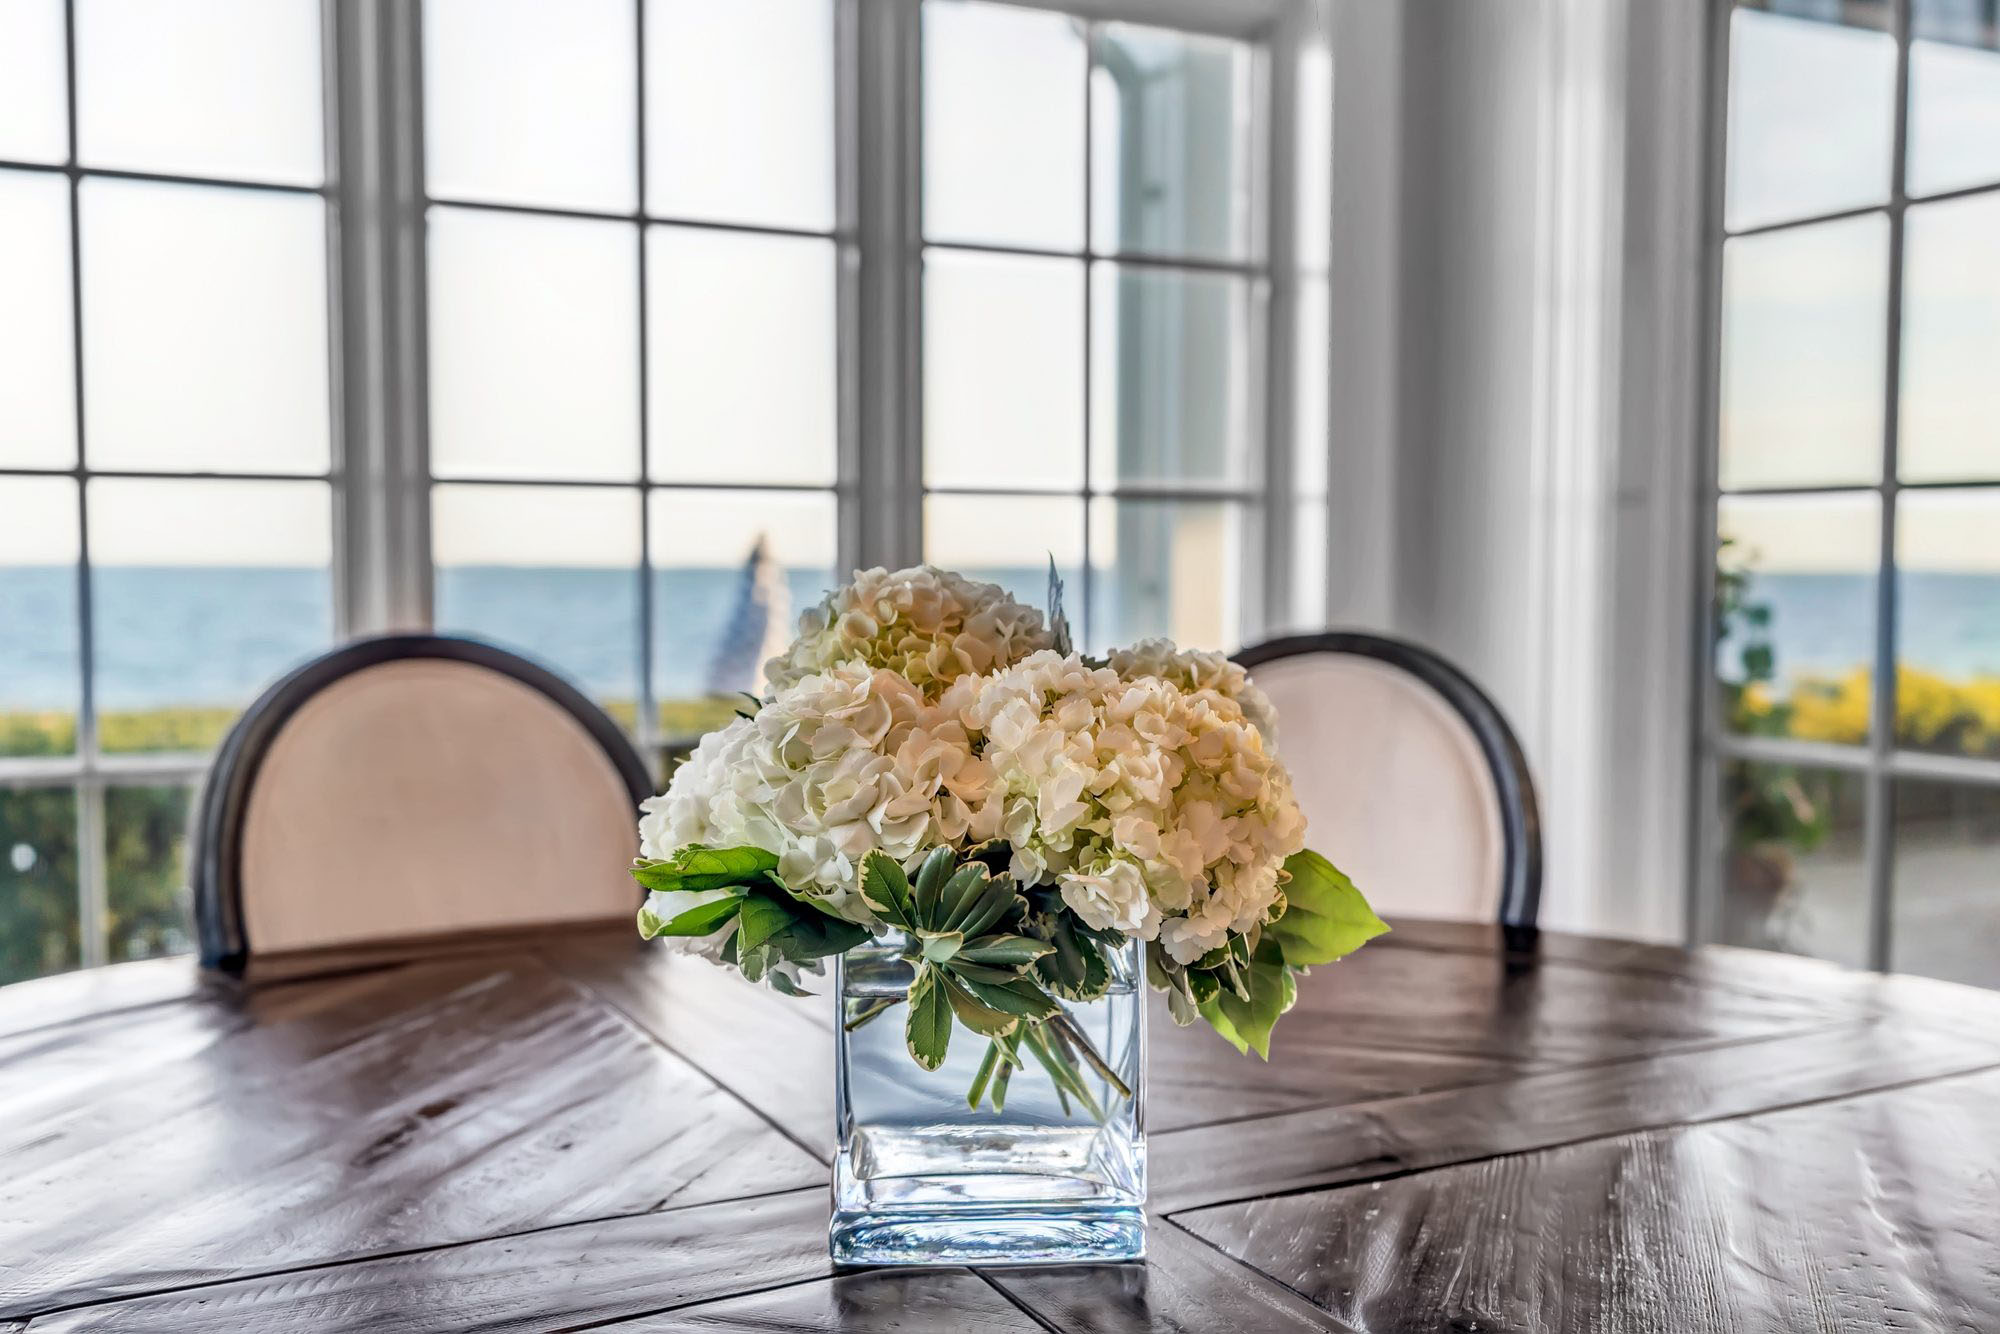 Closeup of a kitchen table with flowers.